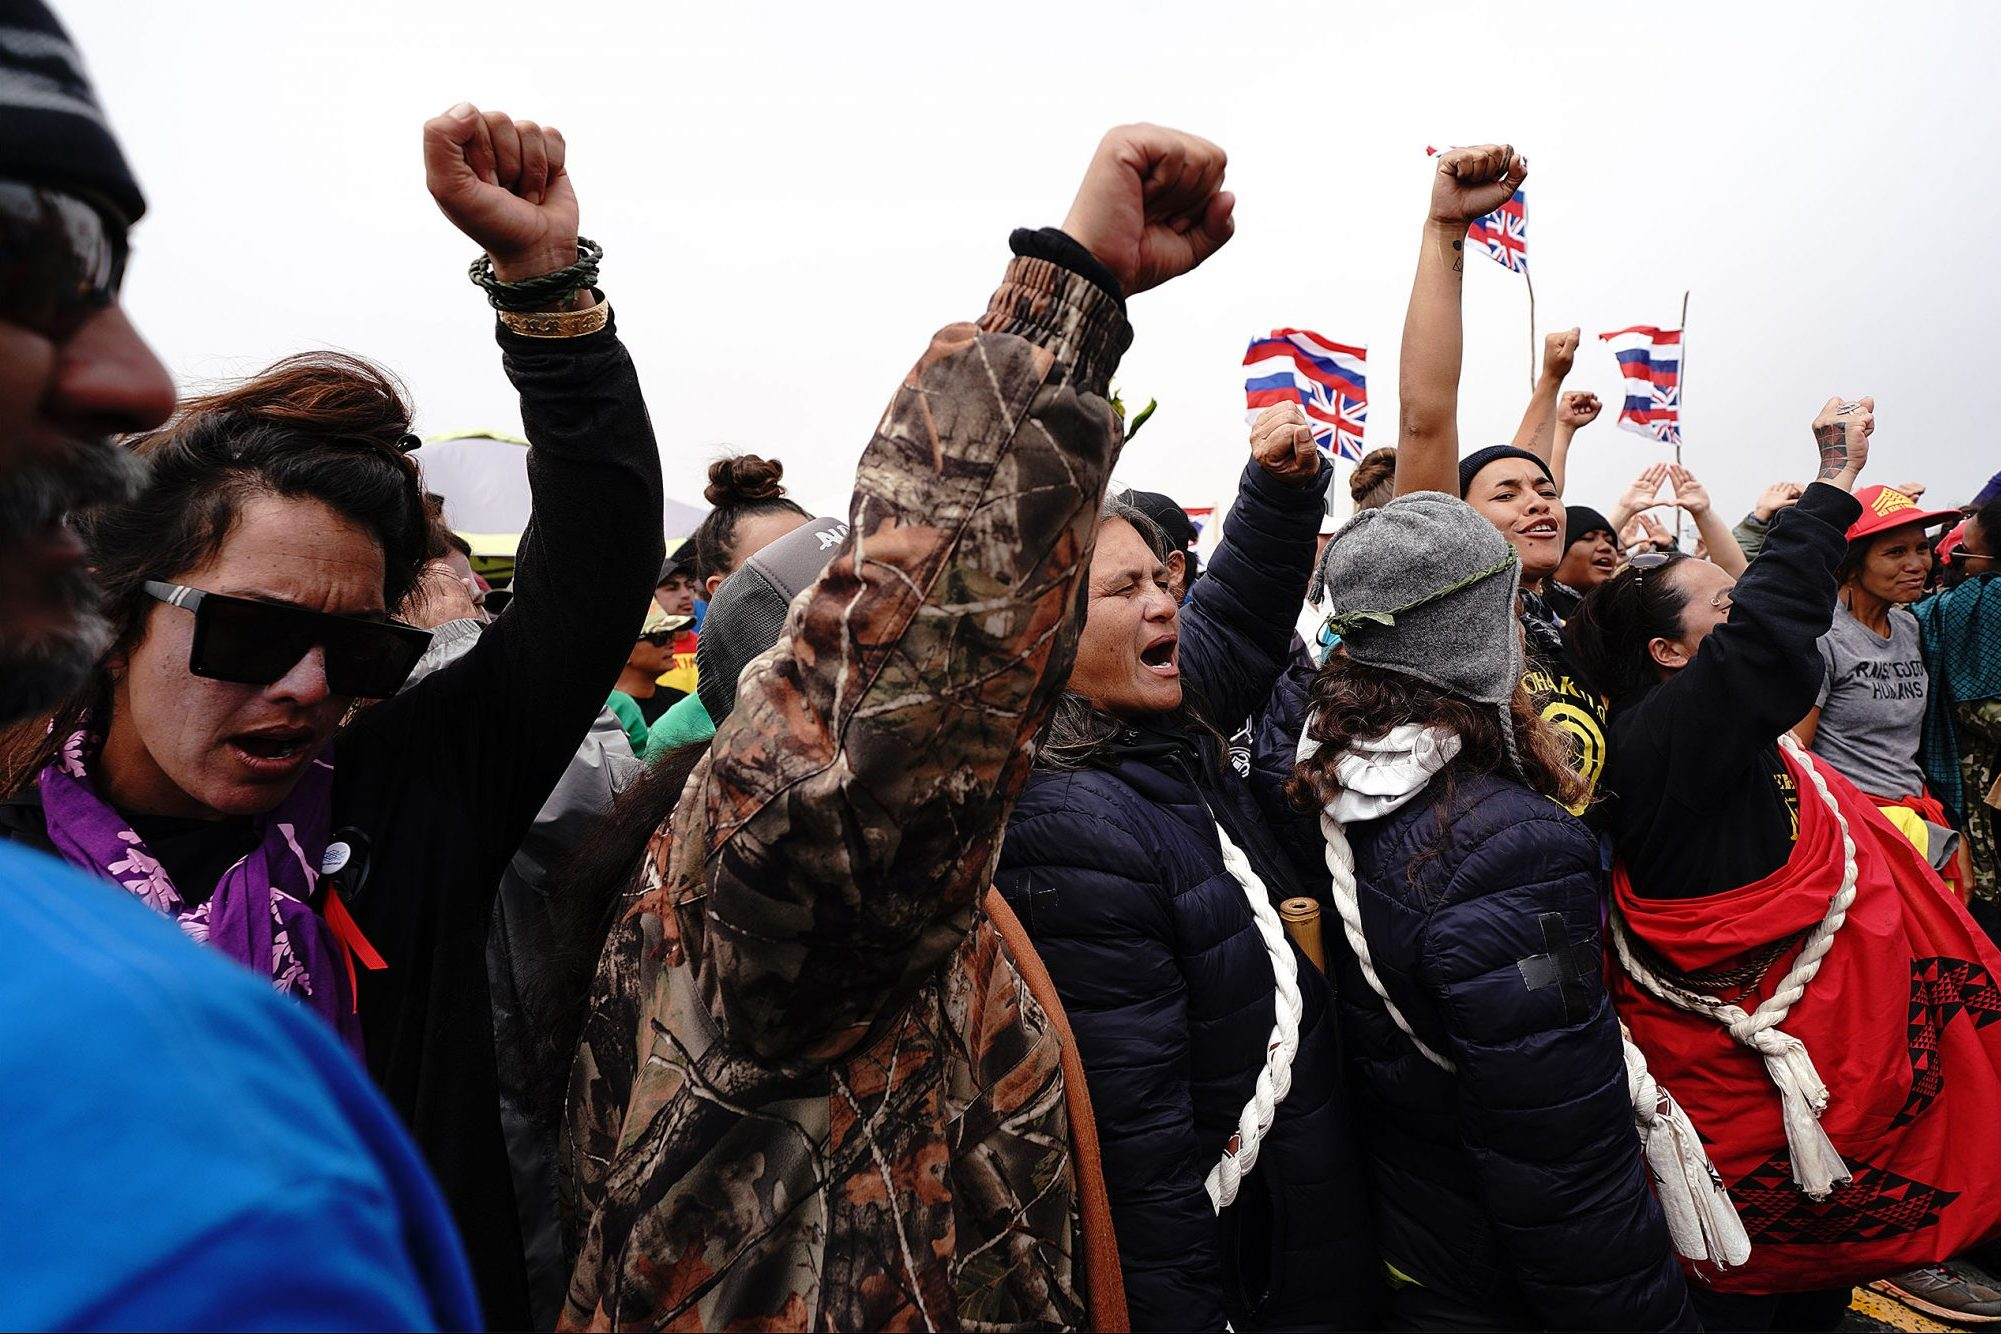 TMT Wahine Demonstrators cheer after law enforcement left, after negotiations over moving some unattended vehicles on the Saddle Road. July 17, 2019